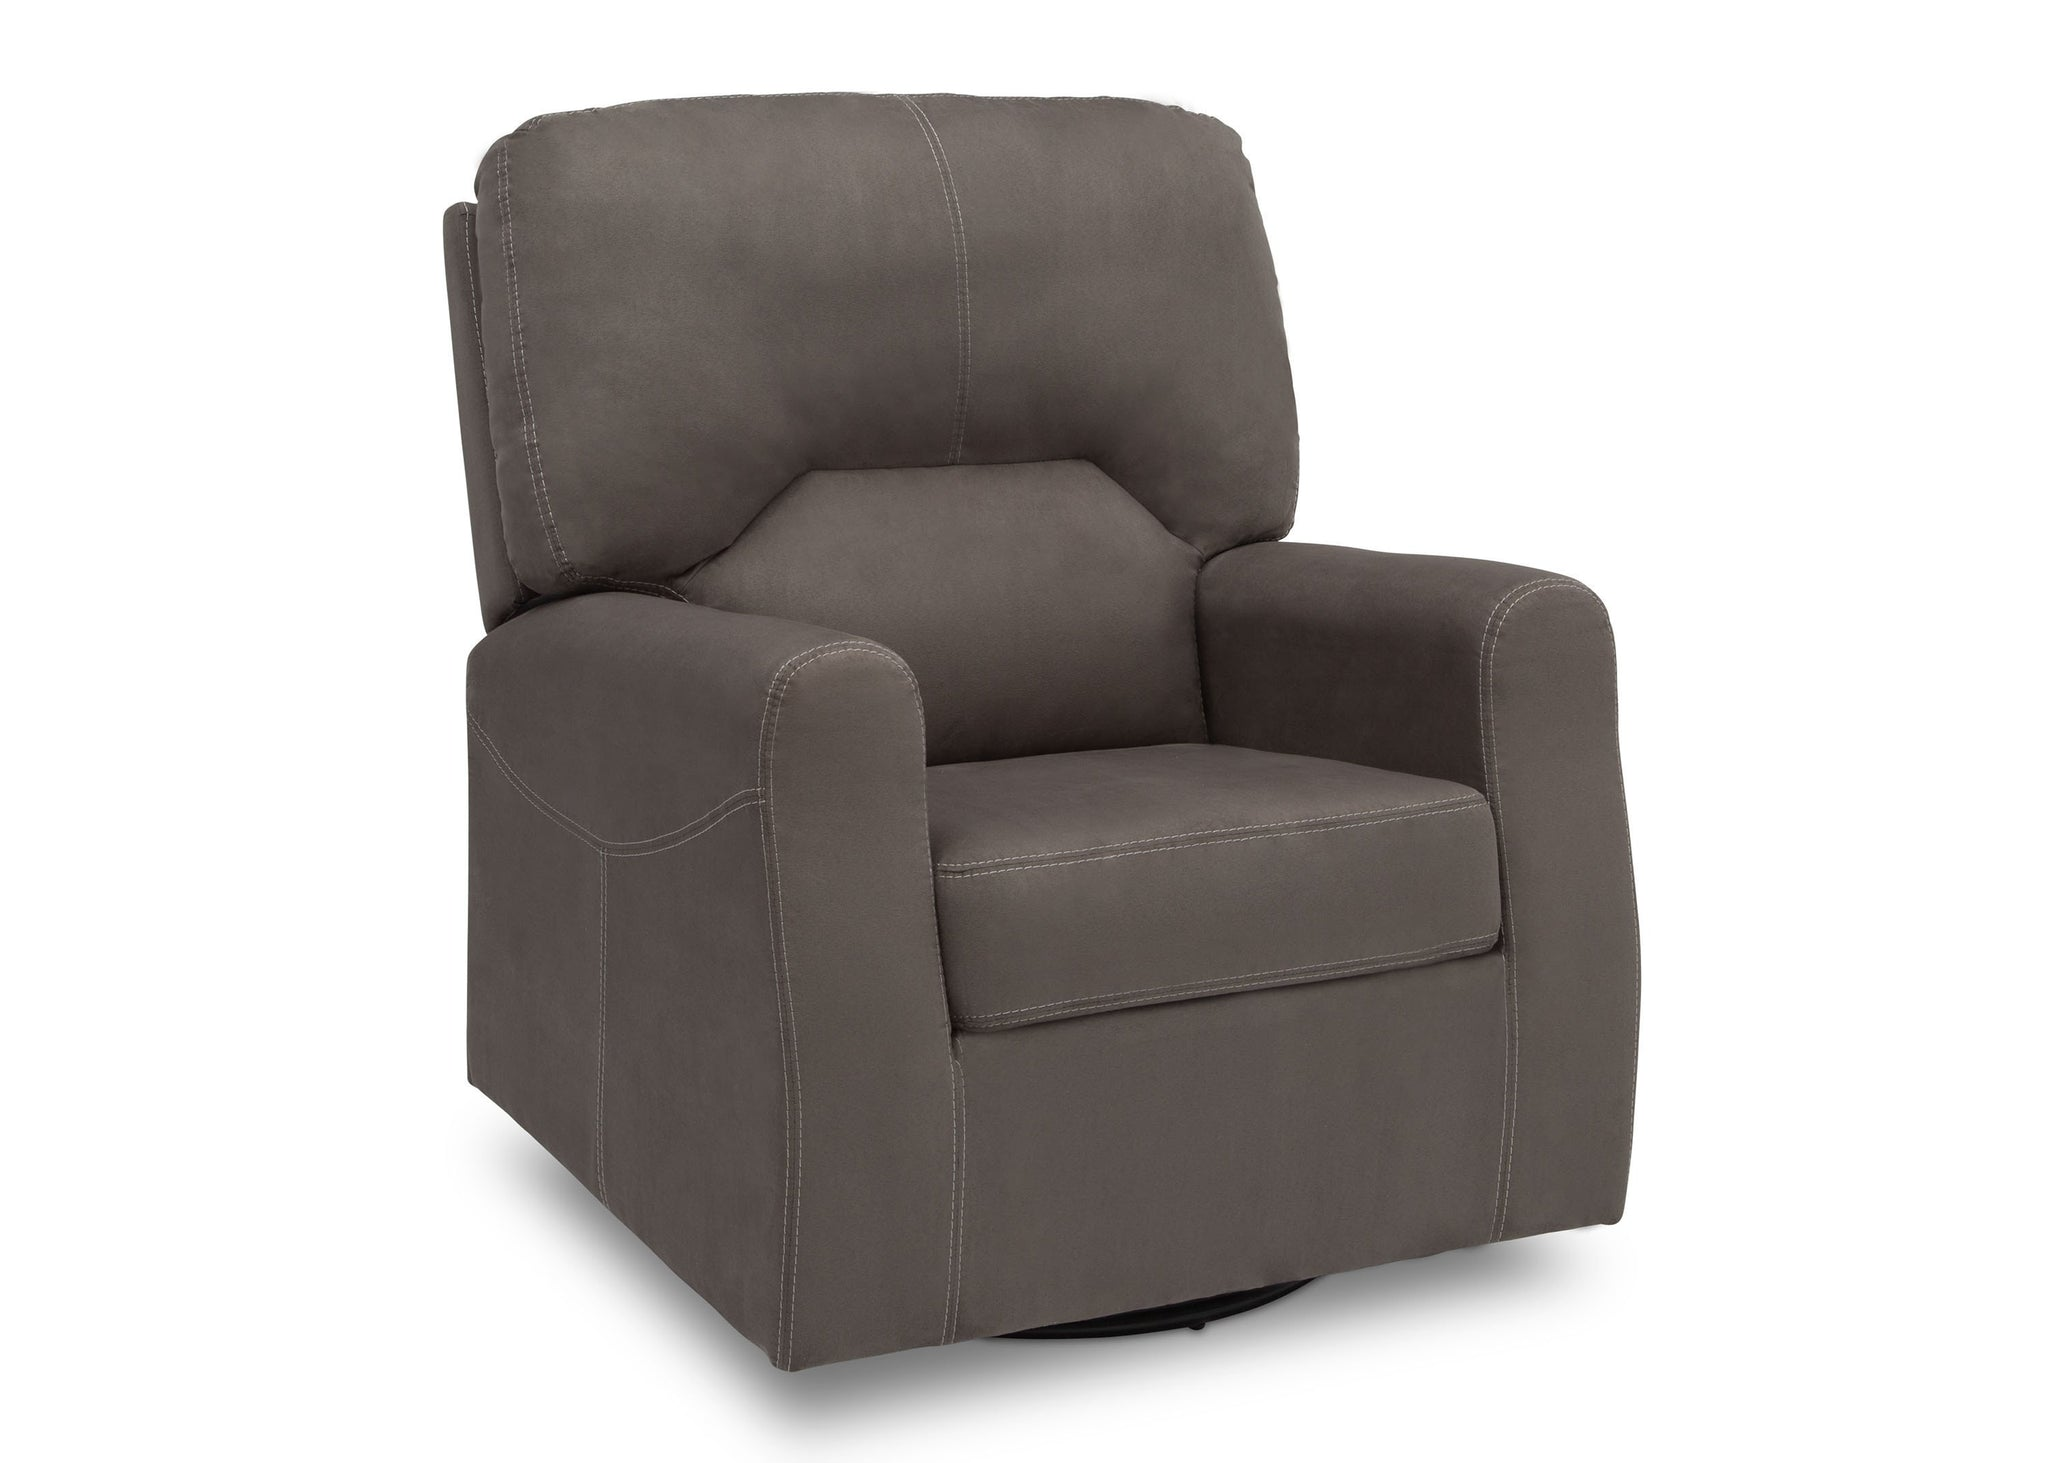 Delta Children Graphite (018) Marshall Nursery Glider Swivel Rocker Chair, right side view, a3a